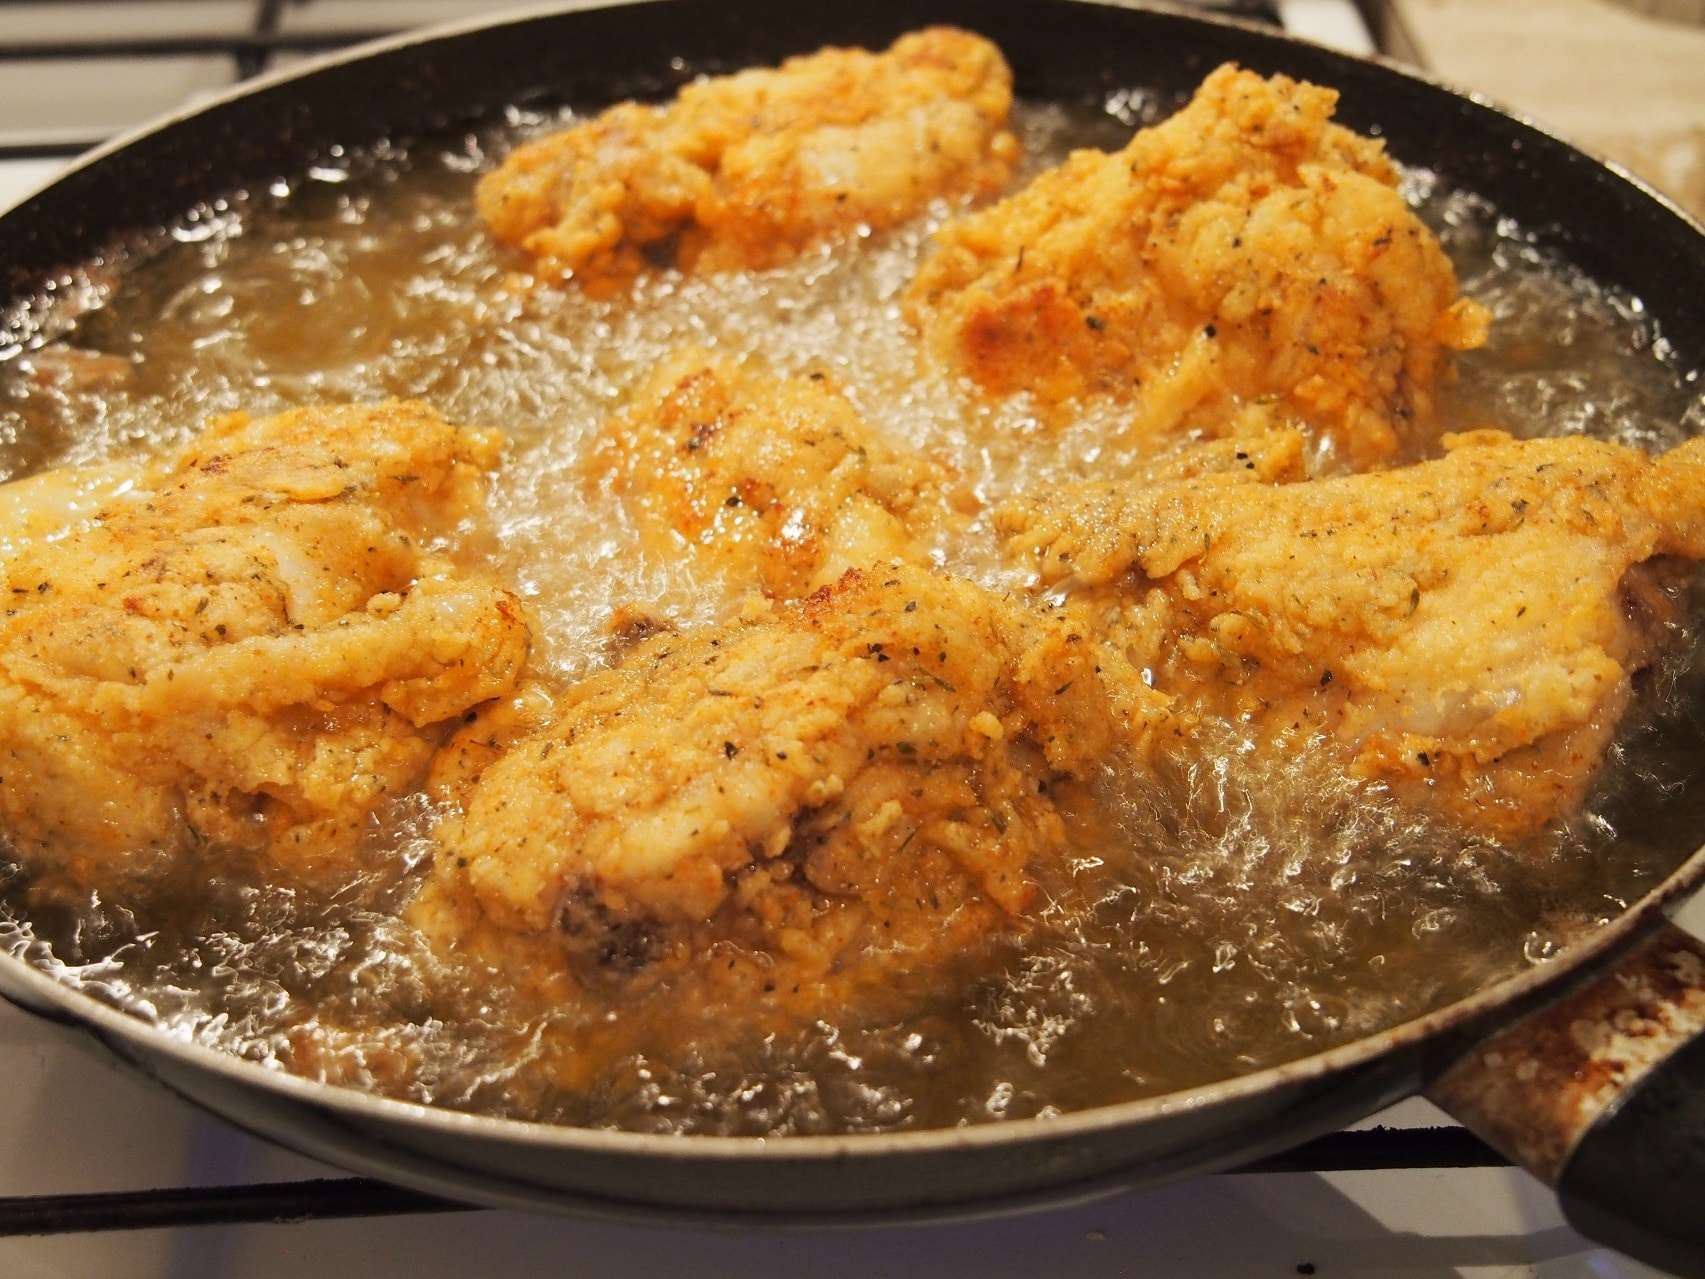 Cooking Blog - Southern Style Whole Fried Chicken 5